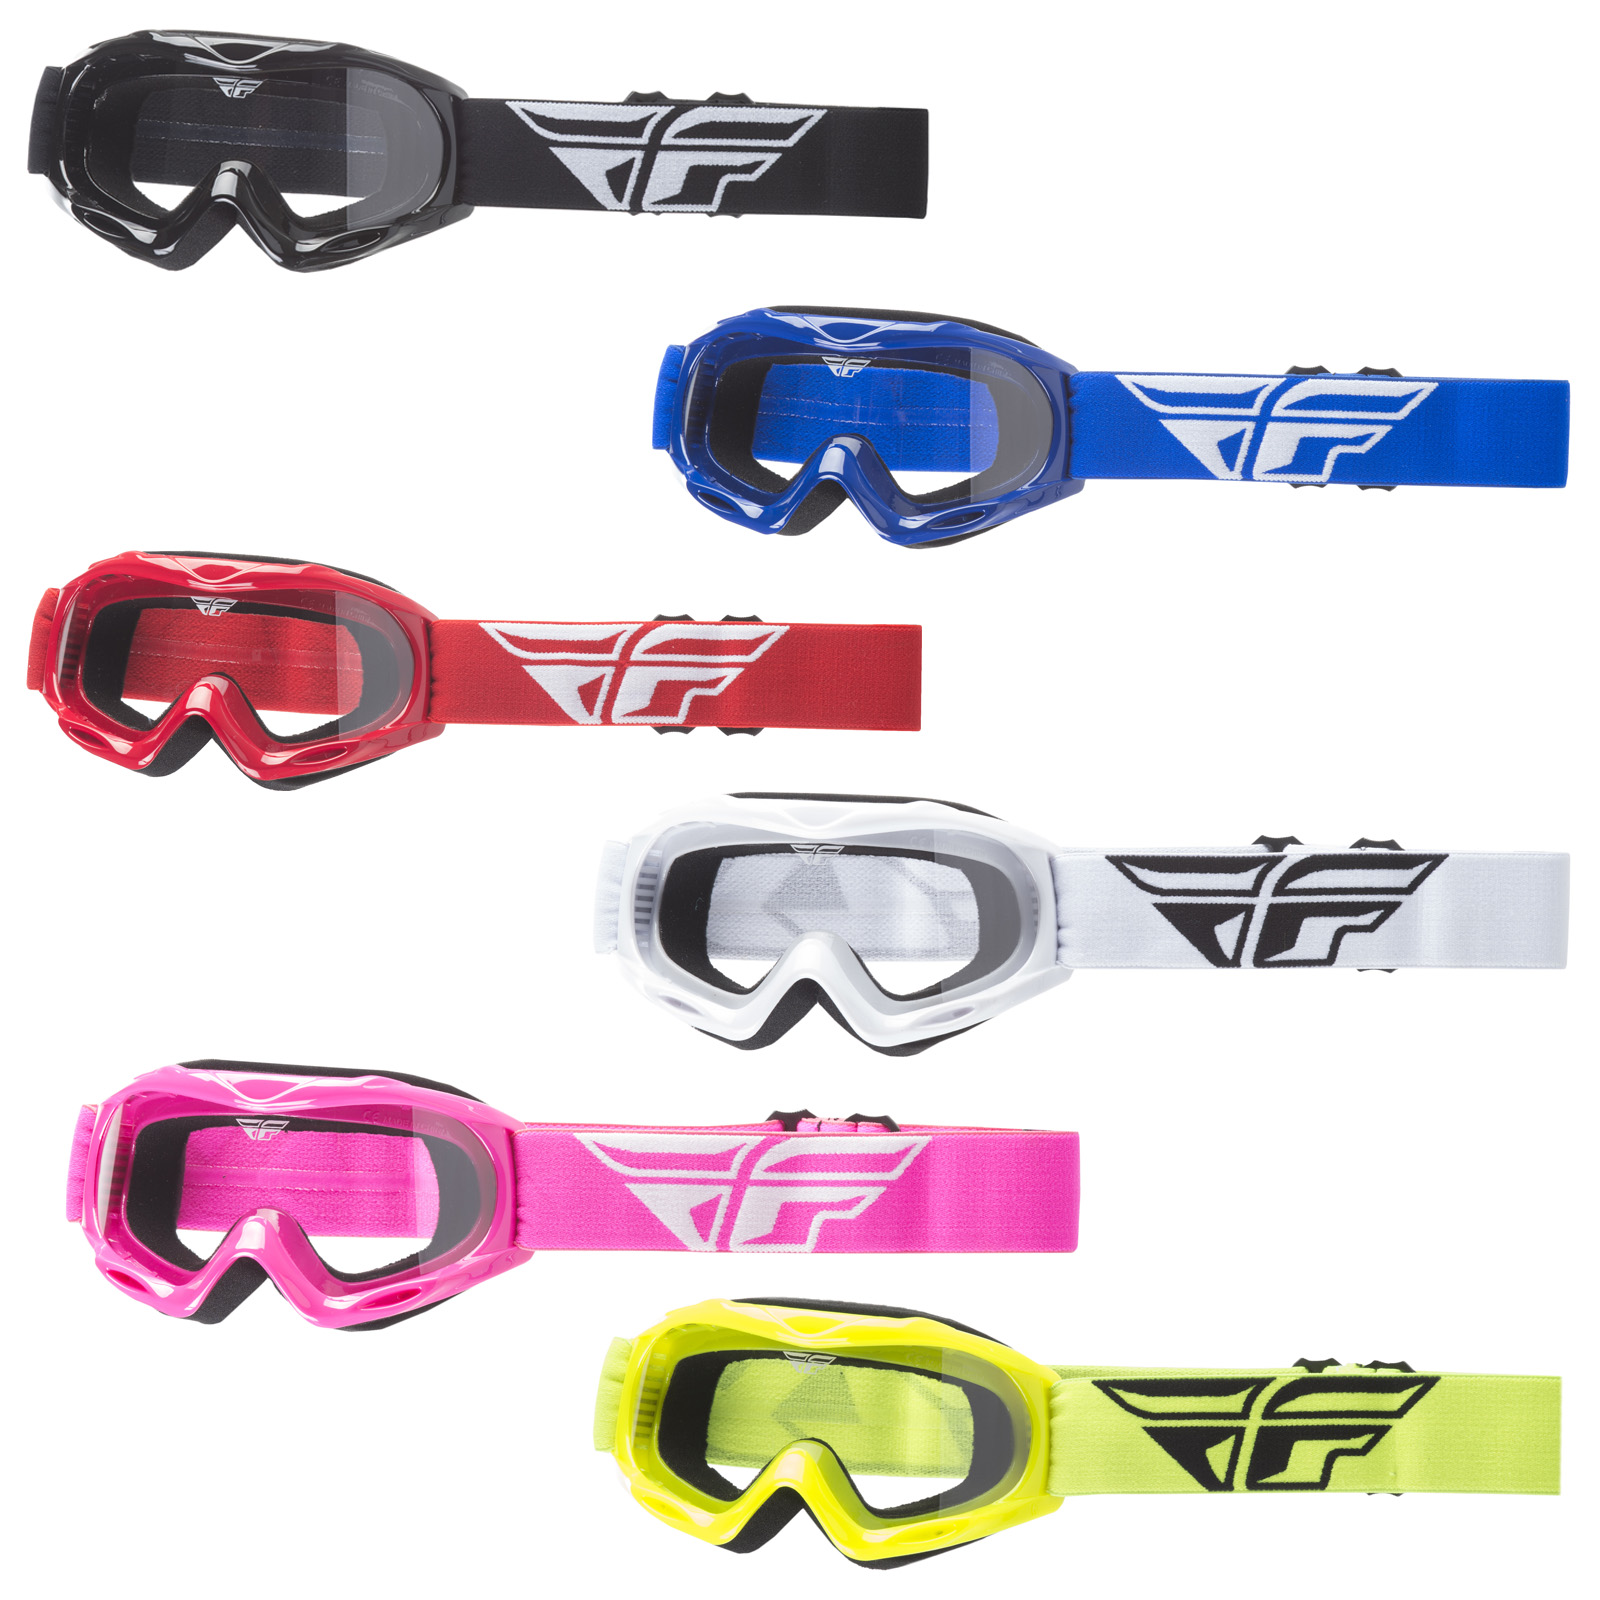 NEW Fly Racing MX Focus Black Clear Kids Motocross Dirt Bike Off Road Goggles